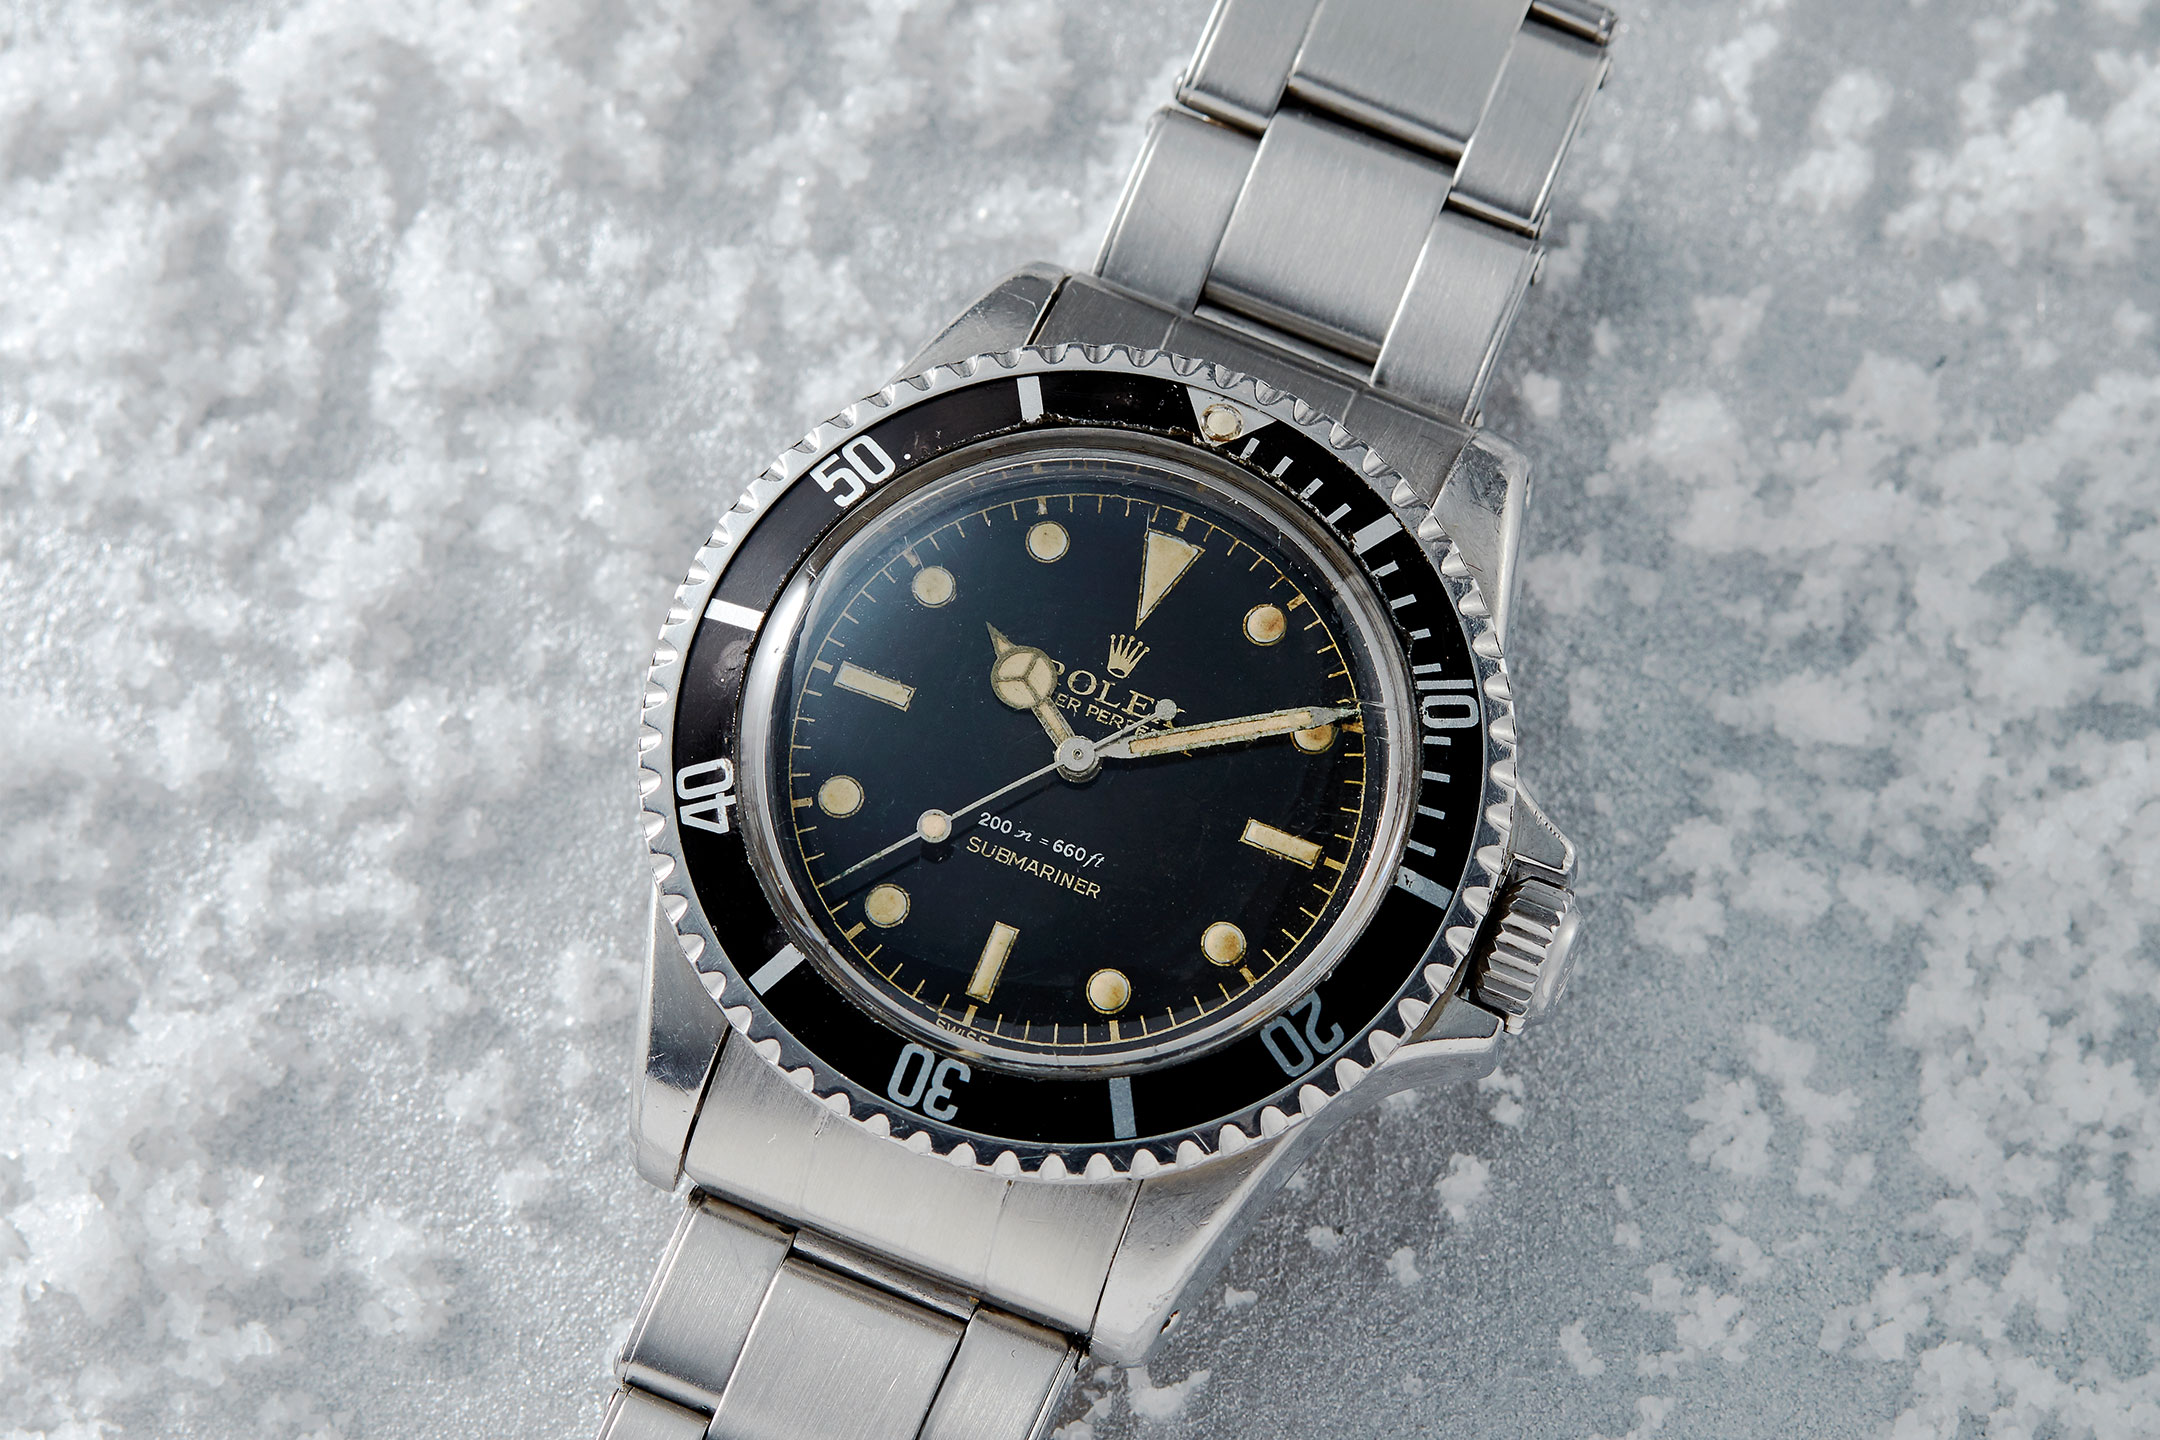 Rolex Submariner Ref. 5512 Square Crown Guards - Fortuna Fine Jewelry & Watch Auction NYC